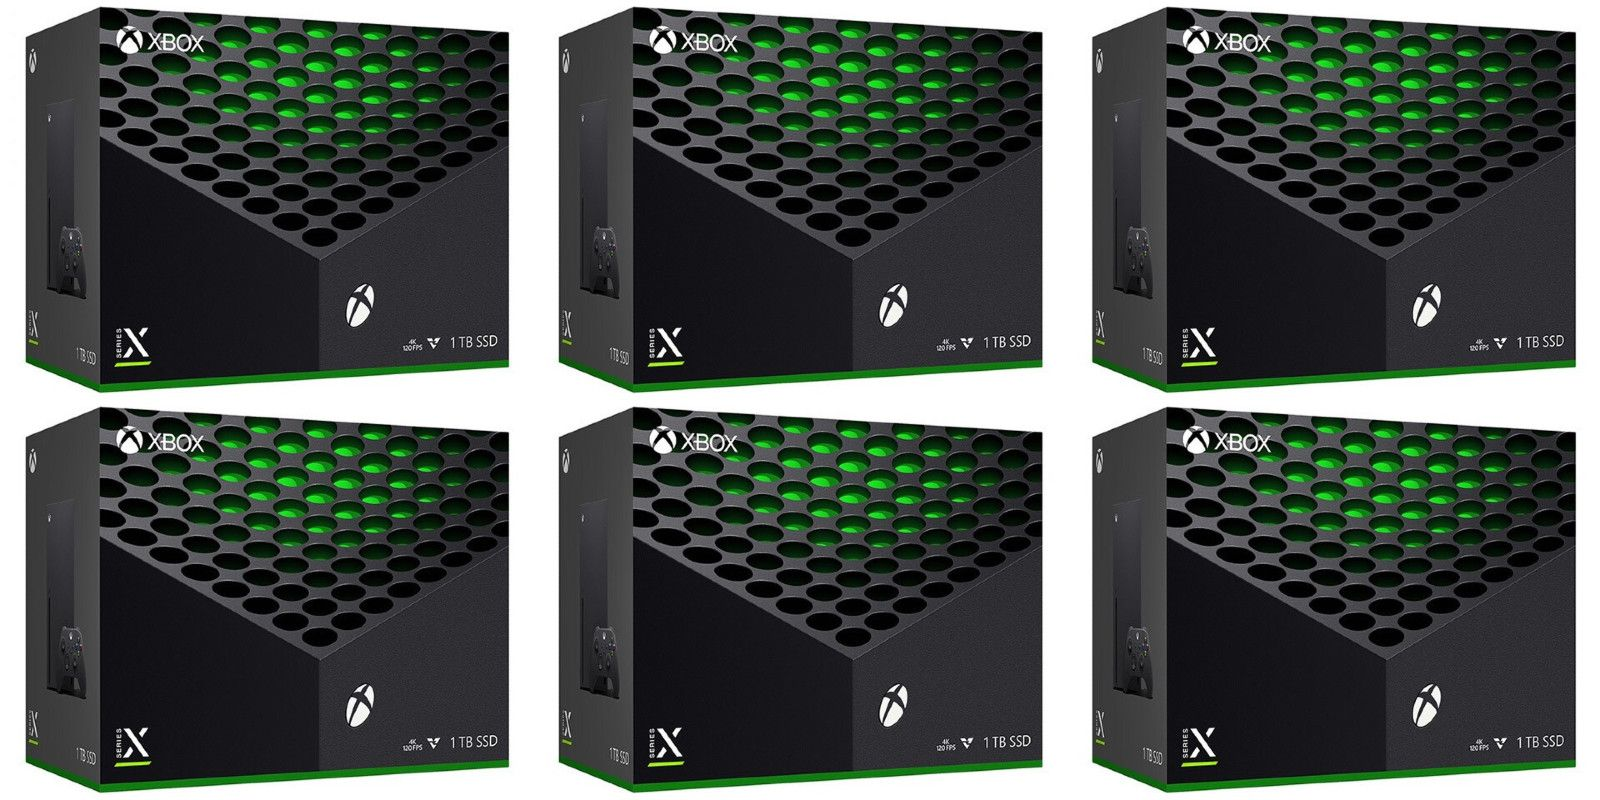 Xbox Series X Retail Listing Shows Off Box Art And Console Design